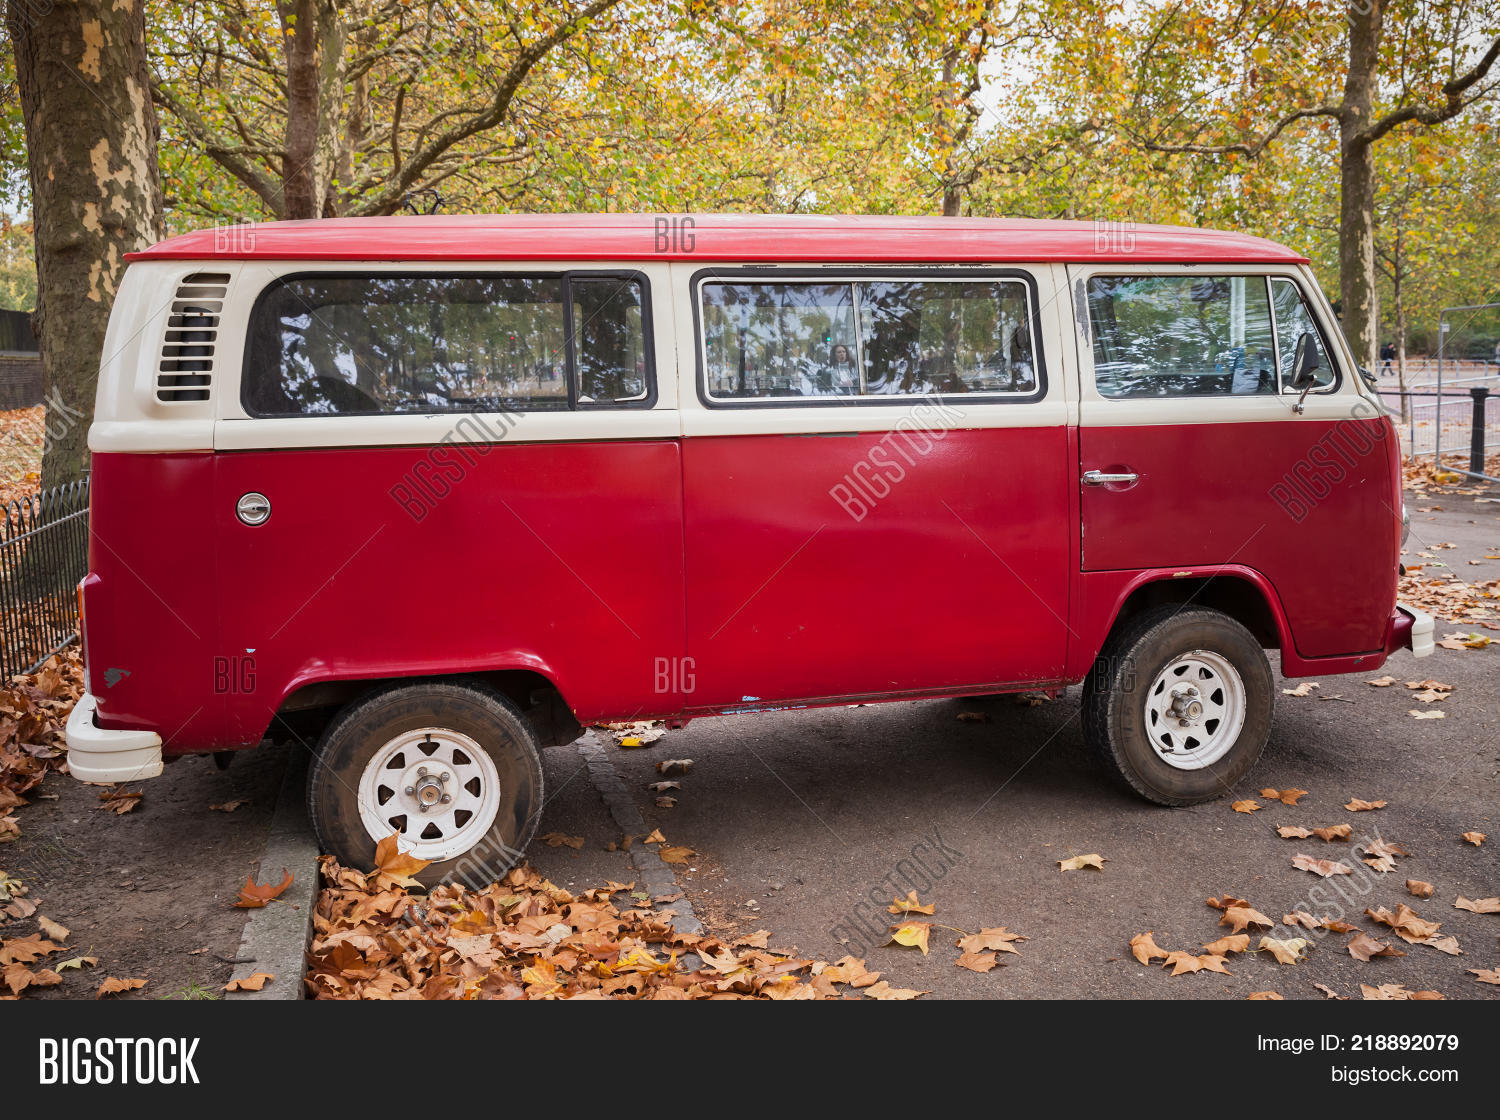 c8a0bf98eb London United Kingdom - October 29 2017  Volkswagen Type 2 or T2 red van  stands